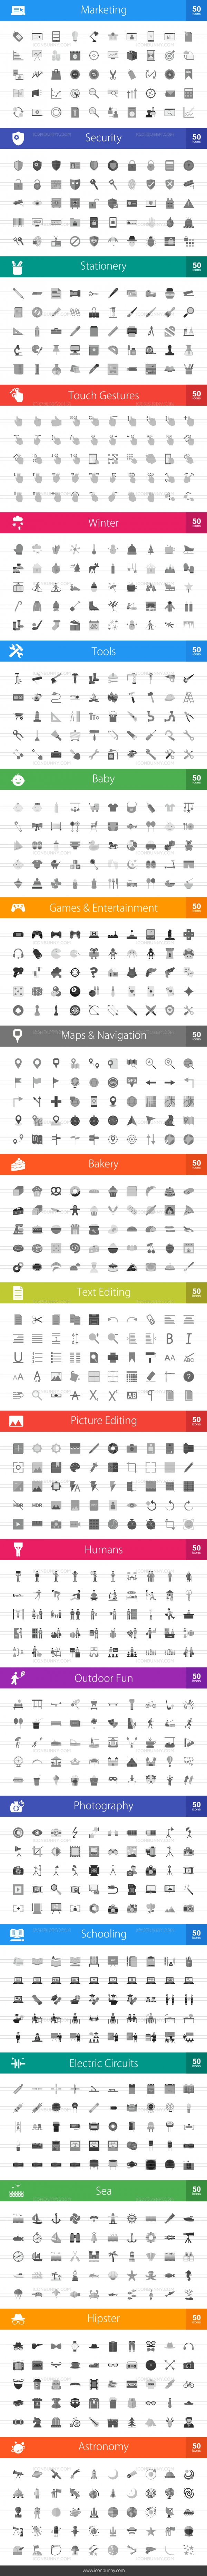 1000 Greyscale Icons Bundle - Preview - IconBunny